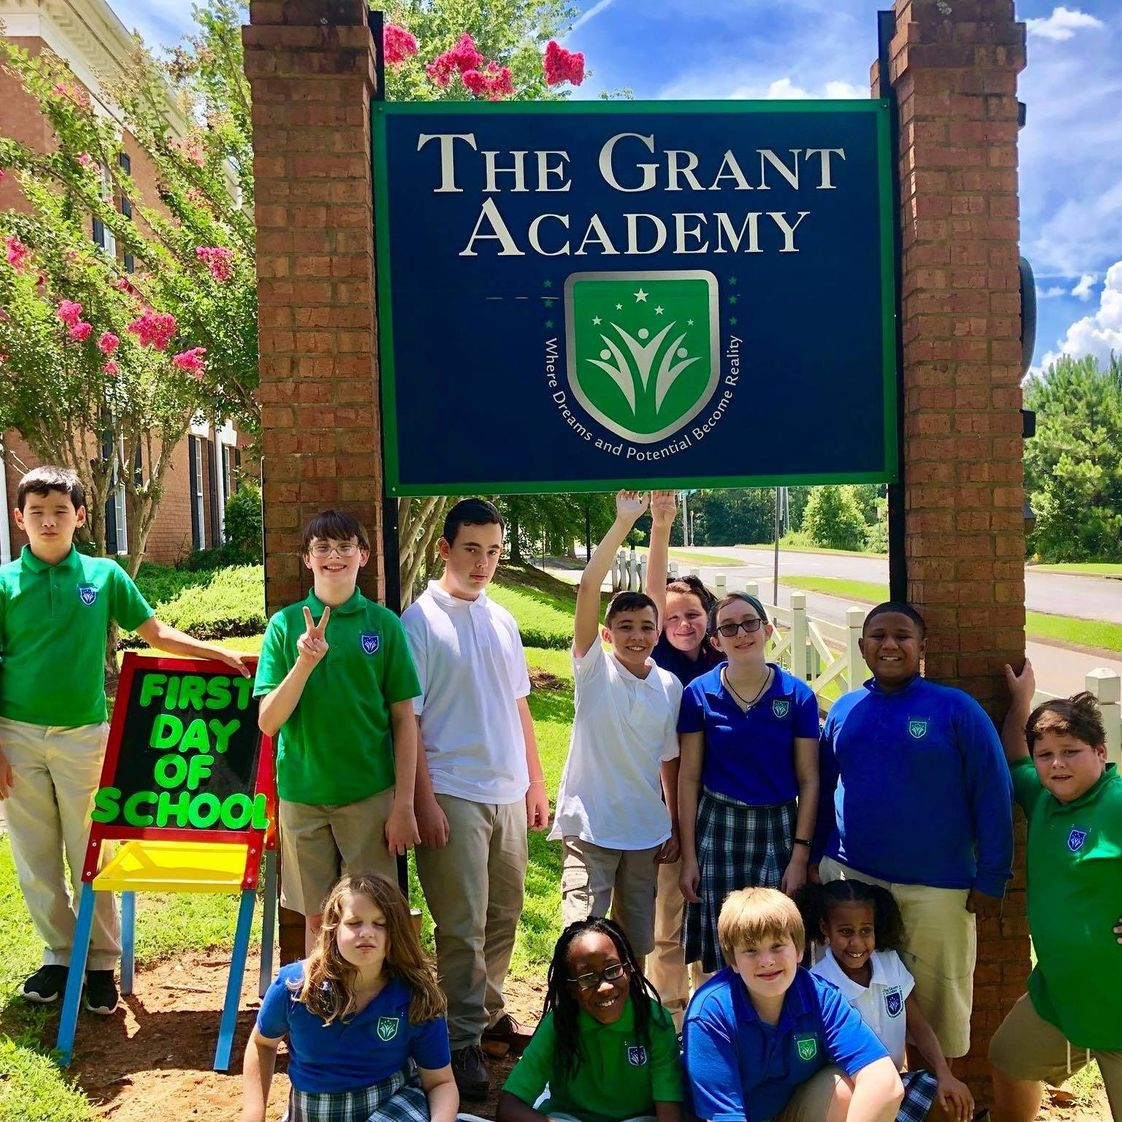 The Grant Academy Photo #1 - We are so blessed to have such a great group of students at The Grant Academy.